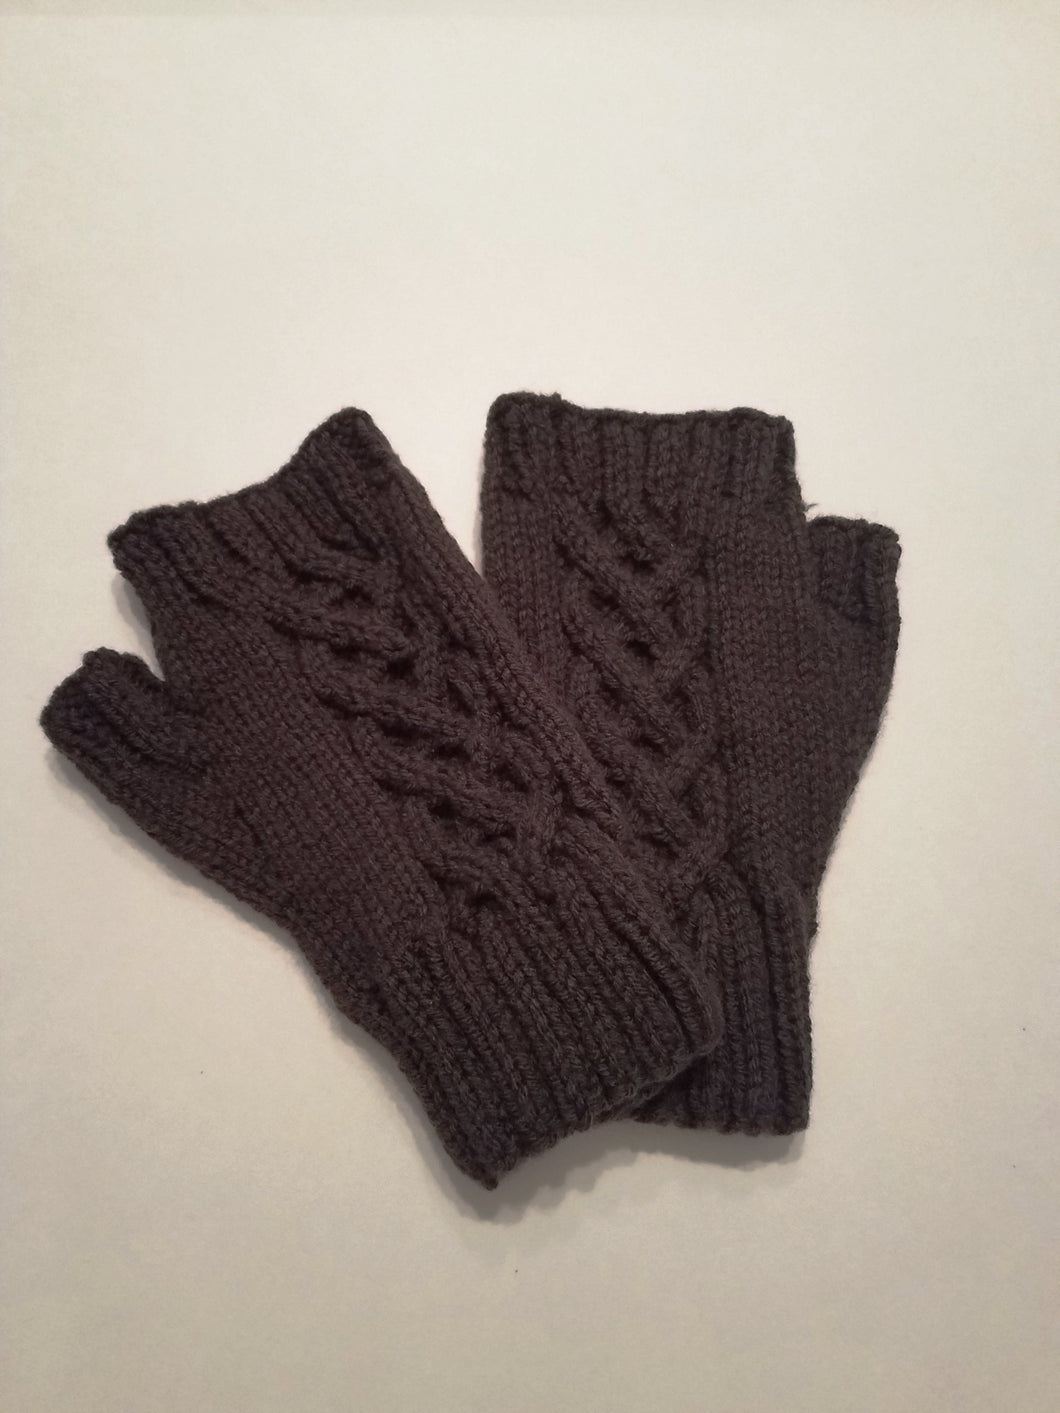 Fingerless Gloves | Dark Brown | Irish Knot Design | Hand-knitted